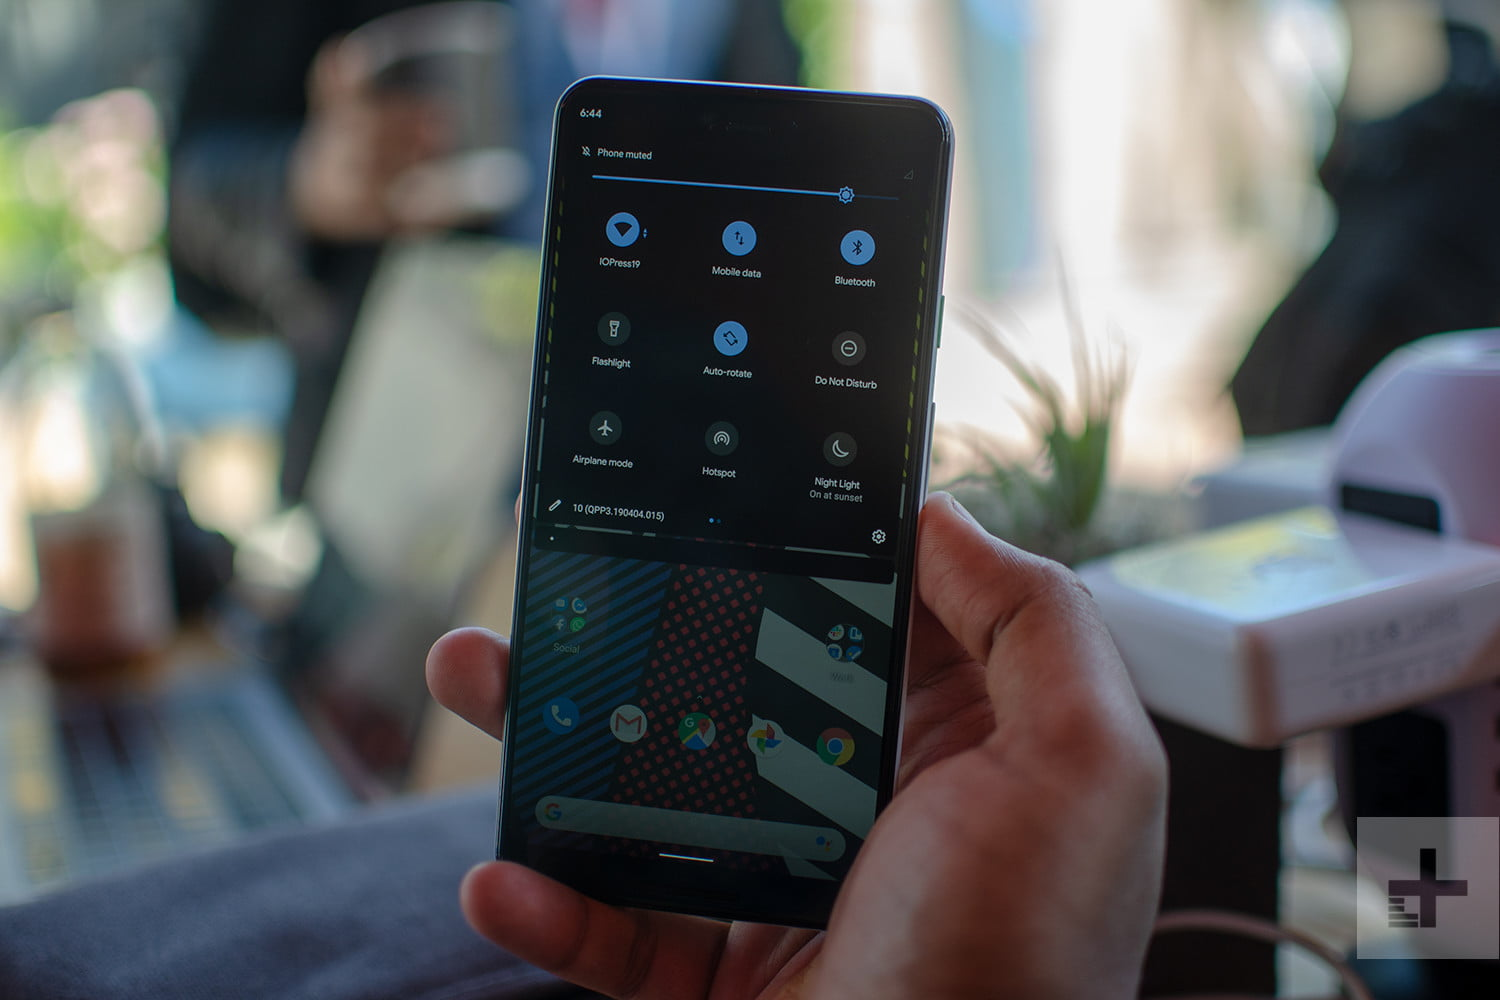 Android 10 Q Hands-on Review: 5G, Privacy, and More ...